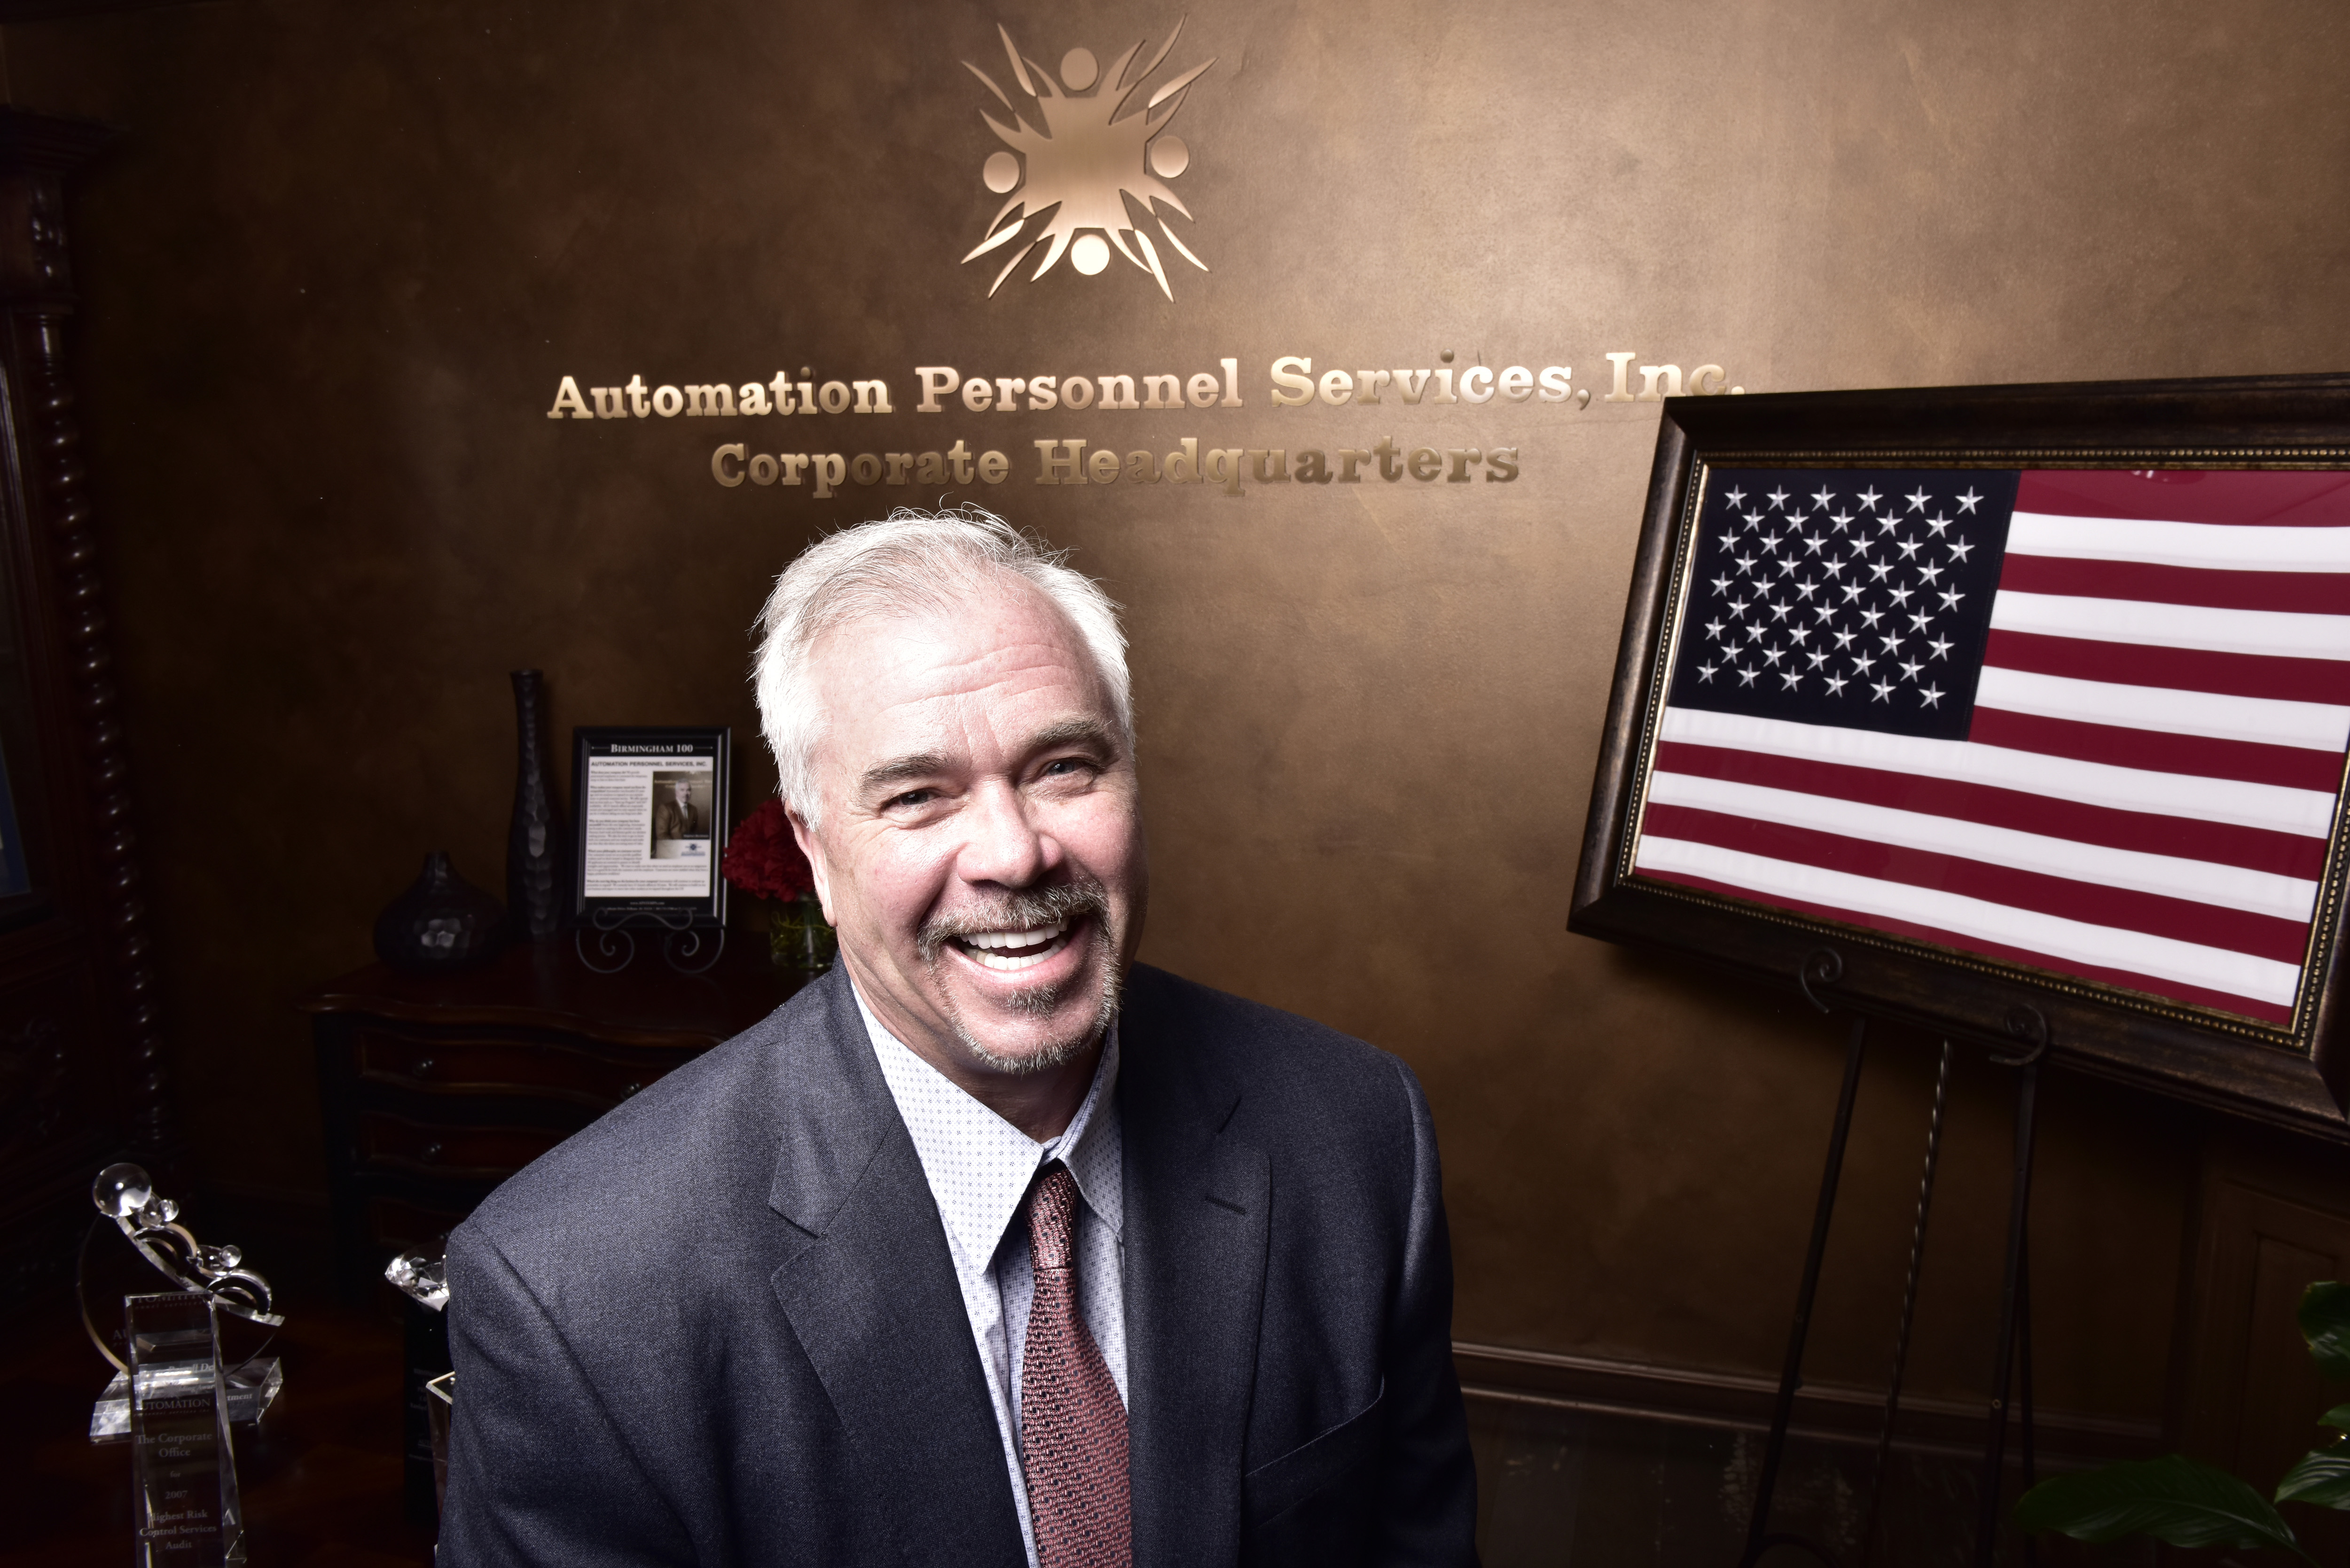 Automation Personnel Services, Inc. President and CEO, Stephen Nordness (Photo: Business Wire)